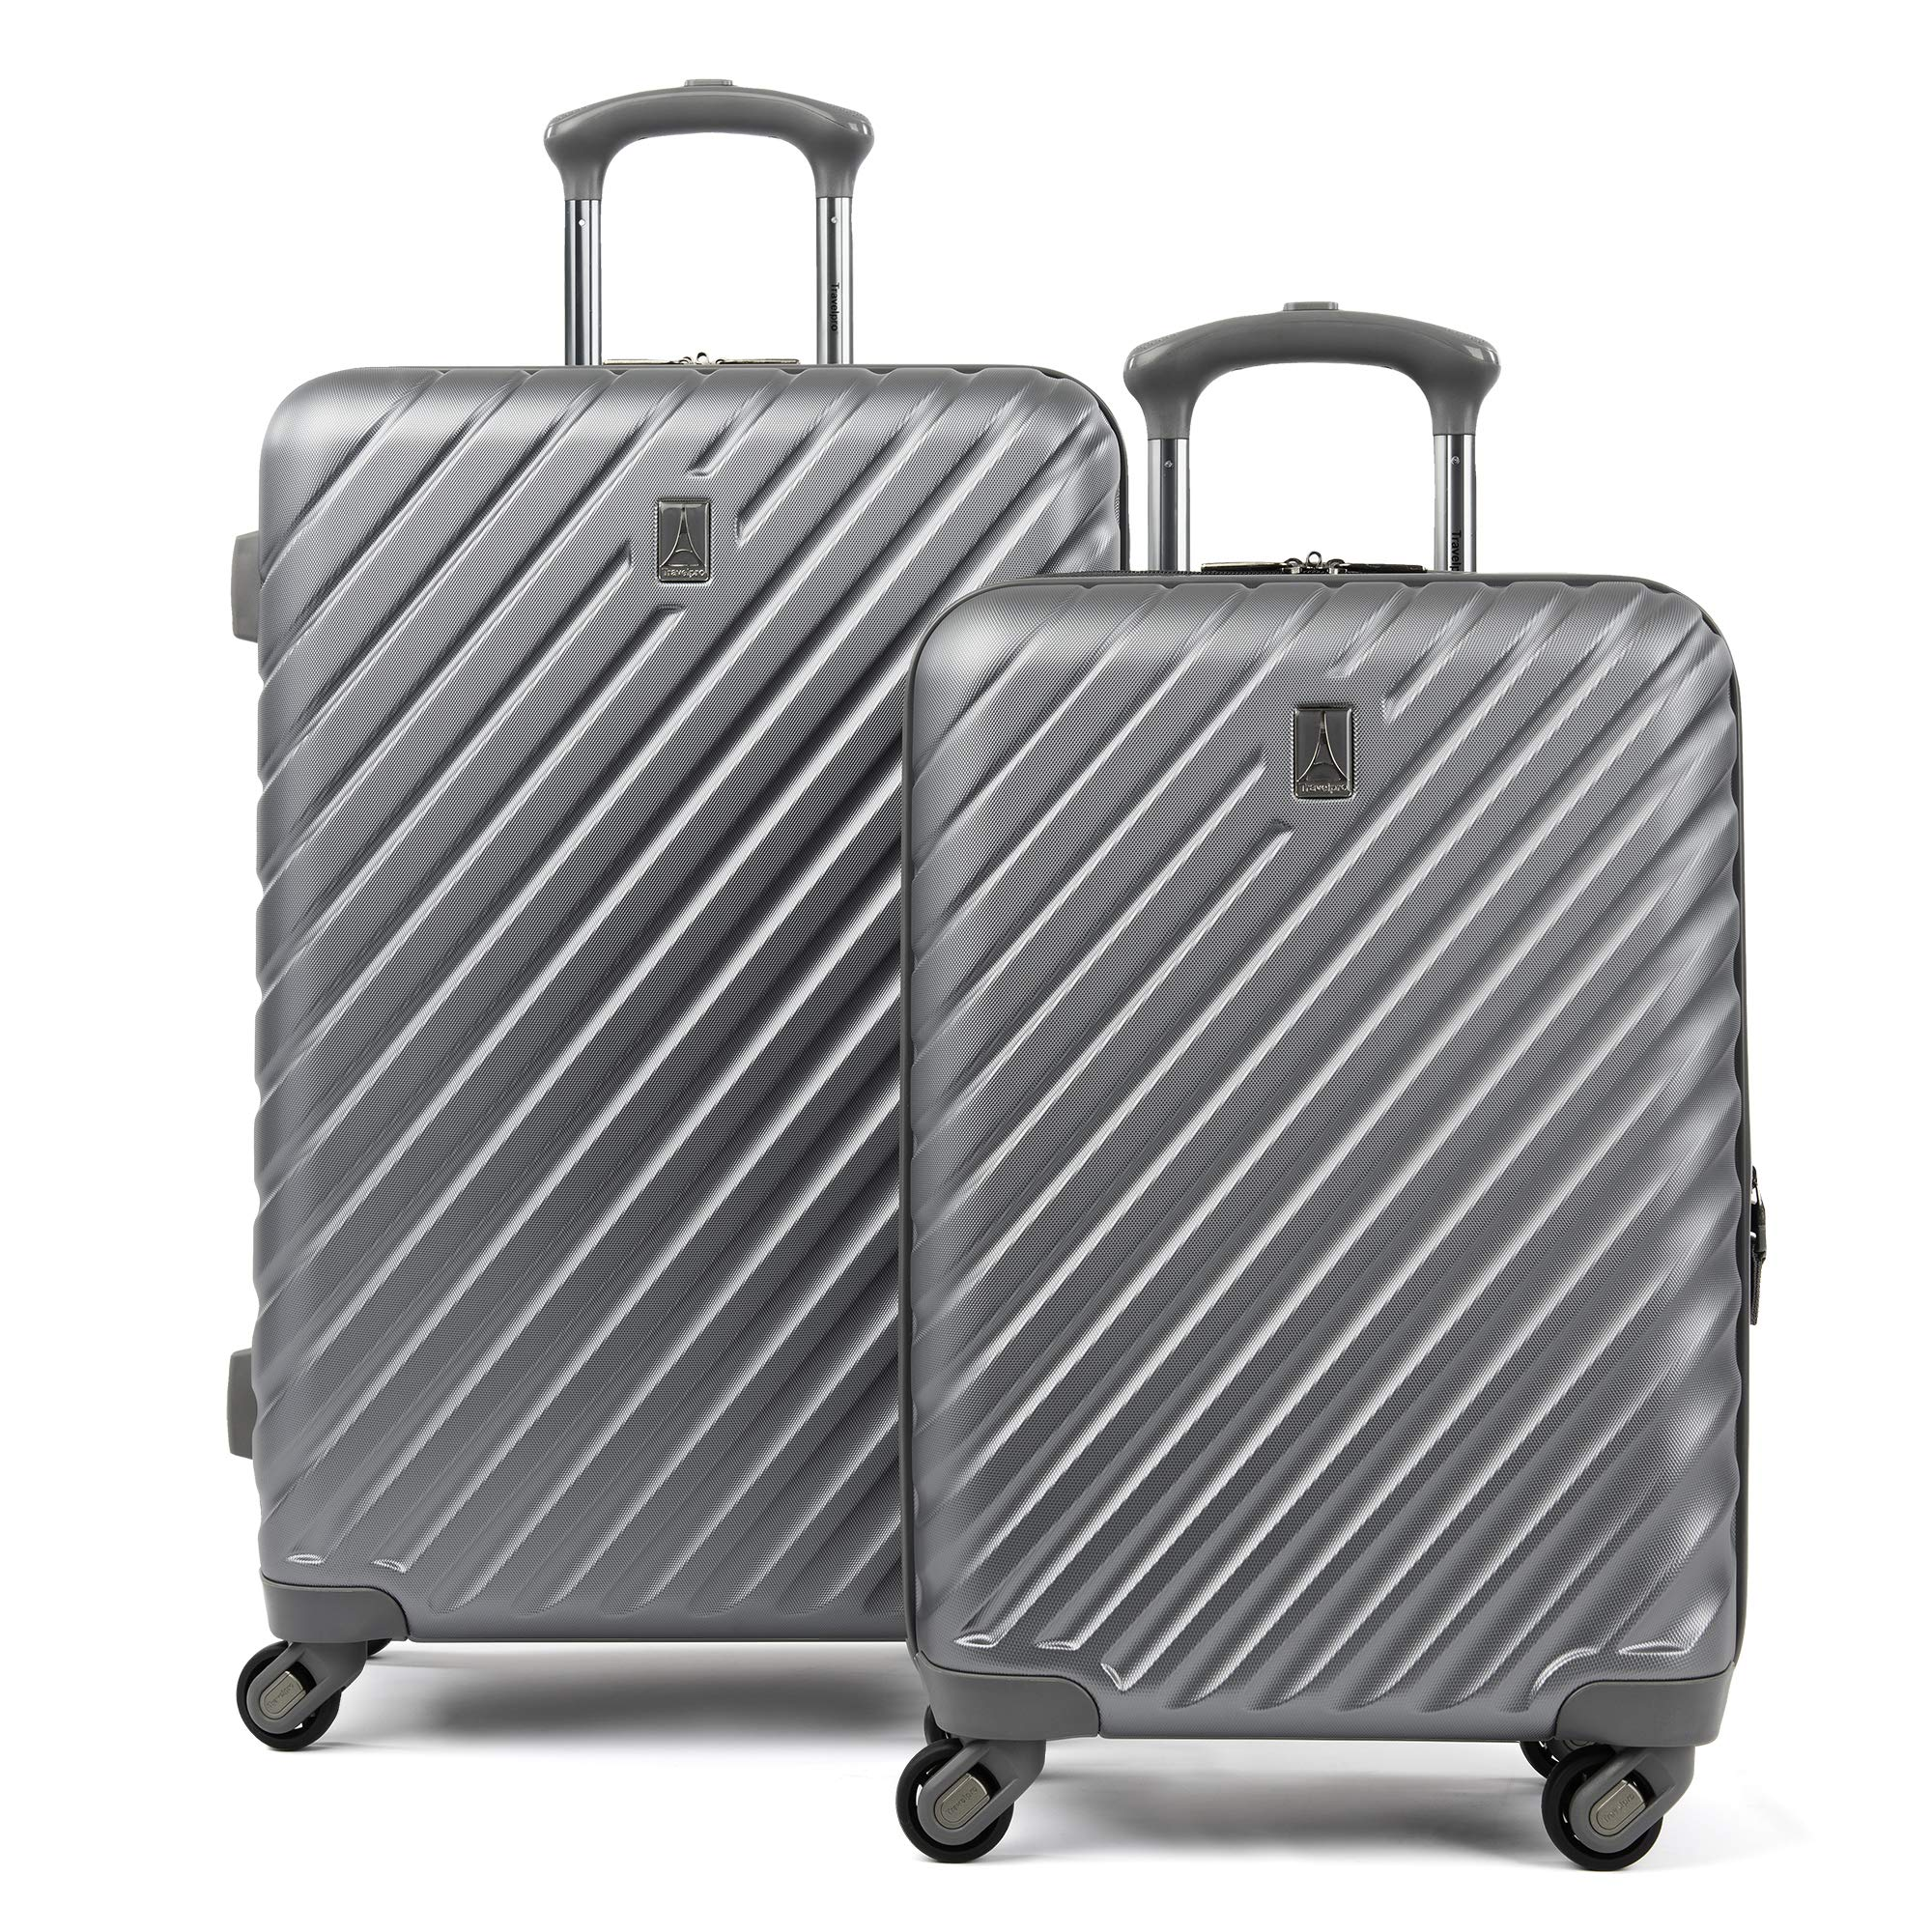 Citadel Deluxe 20'' and 24'' Hardside Spinner Luggage Set by Travelpro, Gun Metal Gray